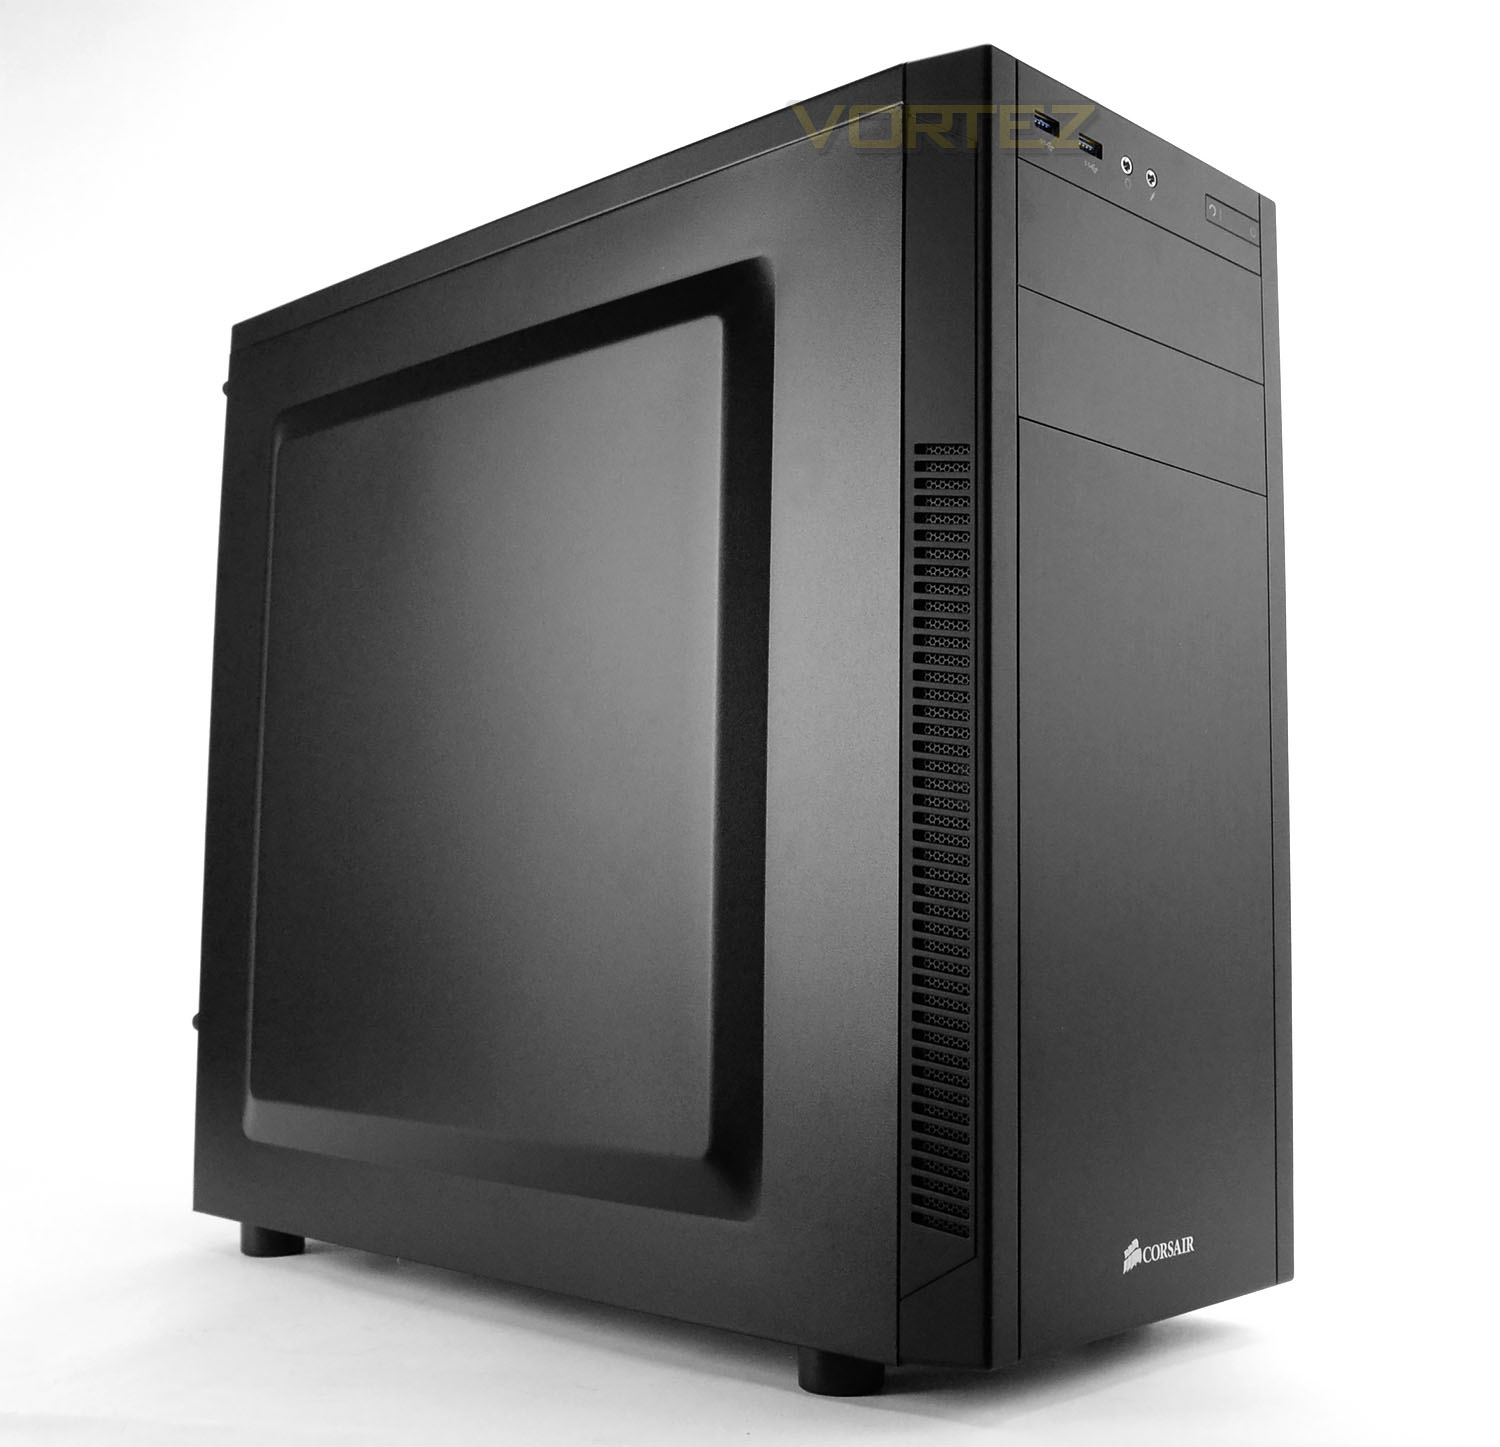 Microcad Extreme Gold PC